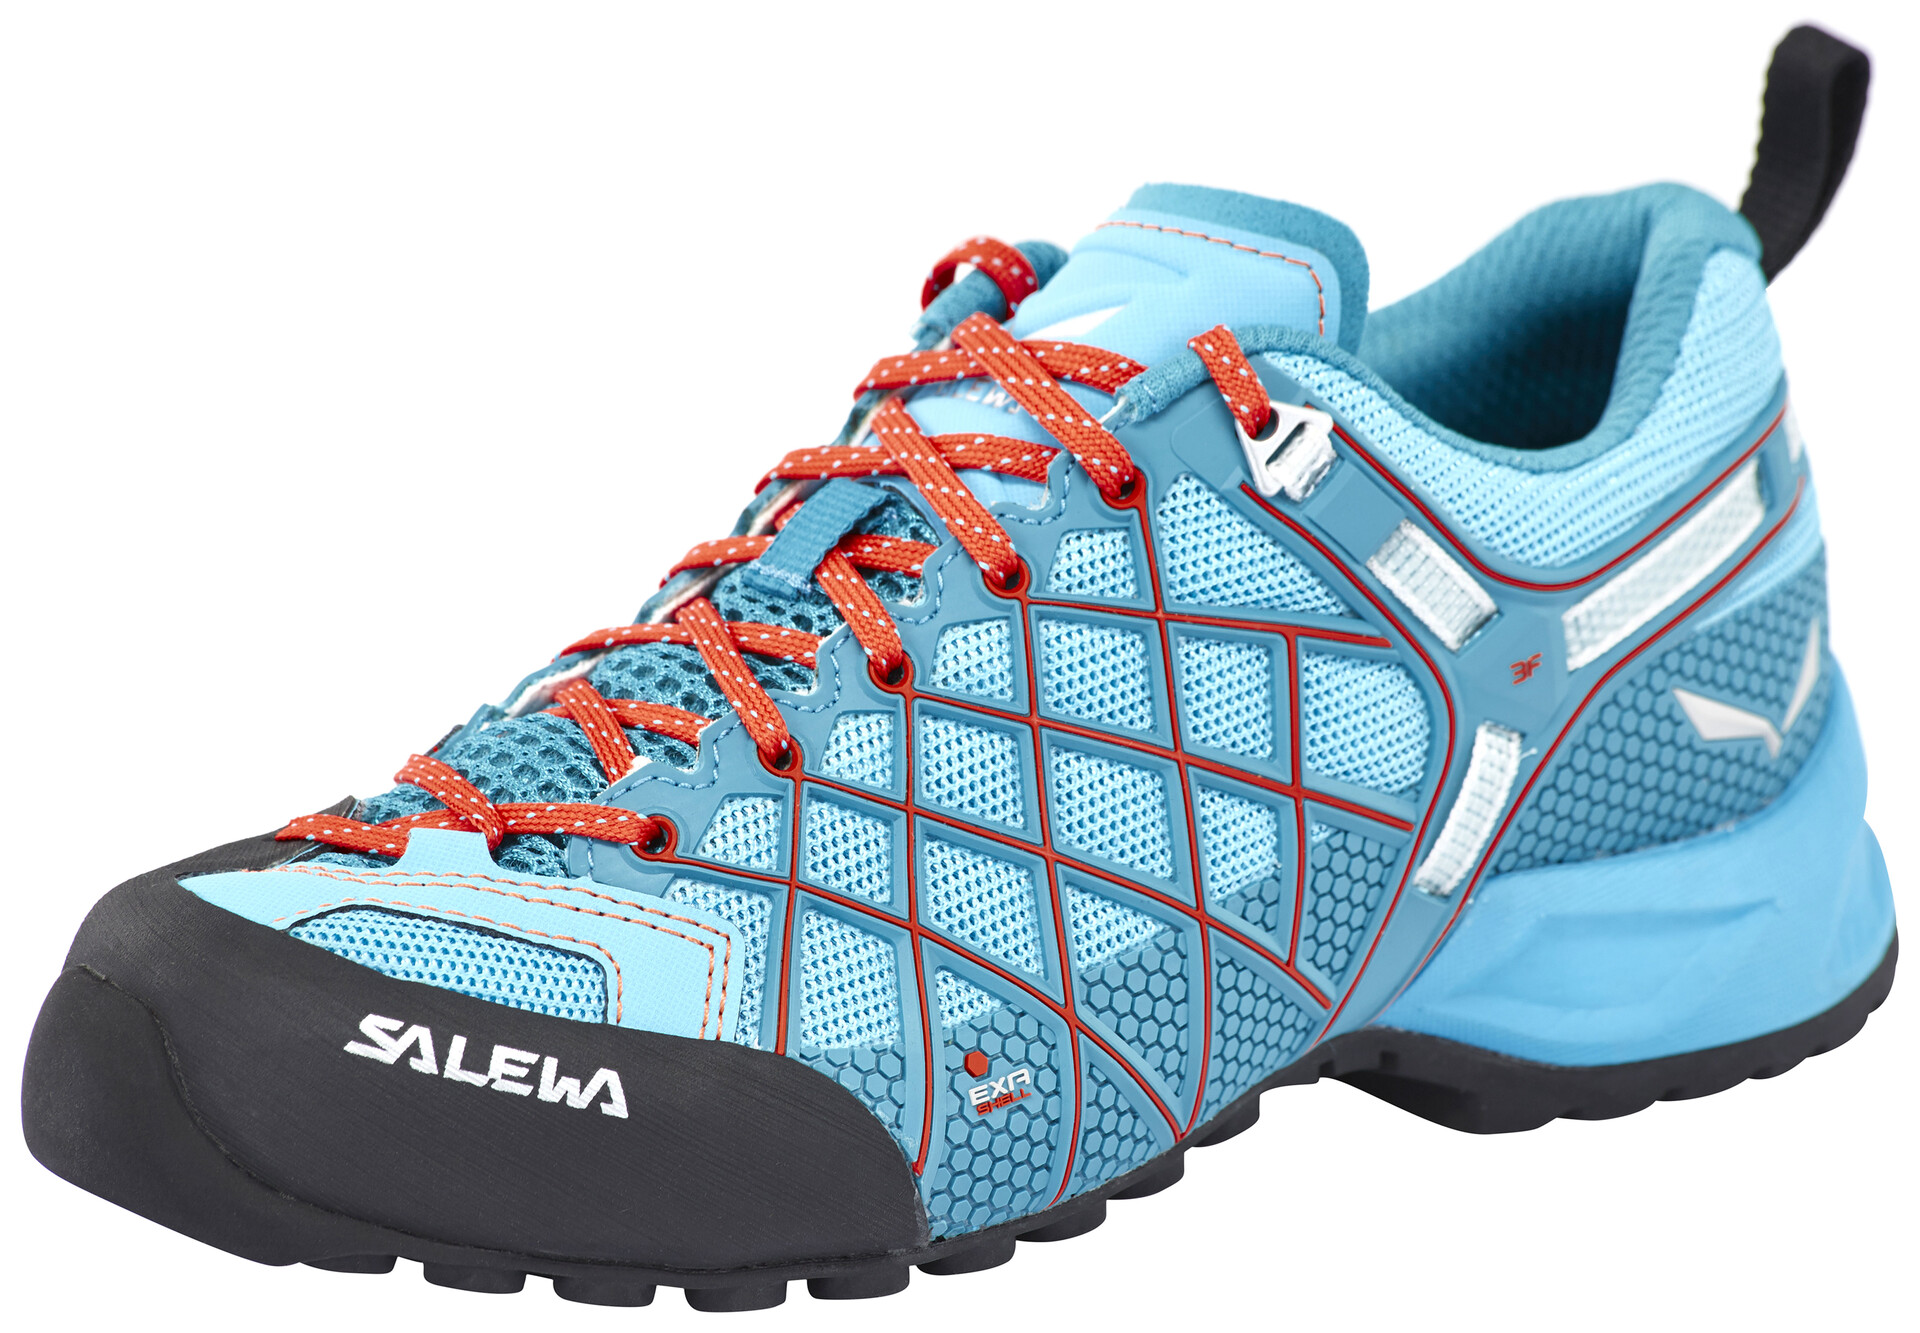 Salewa Klettergurt Größentabelle : Salewa wildfire vent approach shoes women river blue clementine